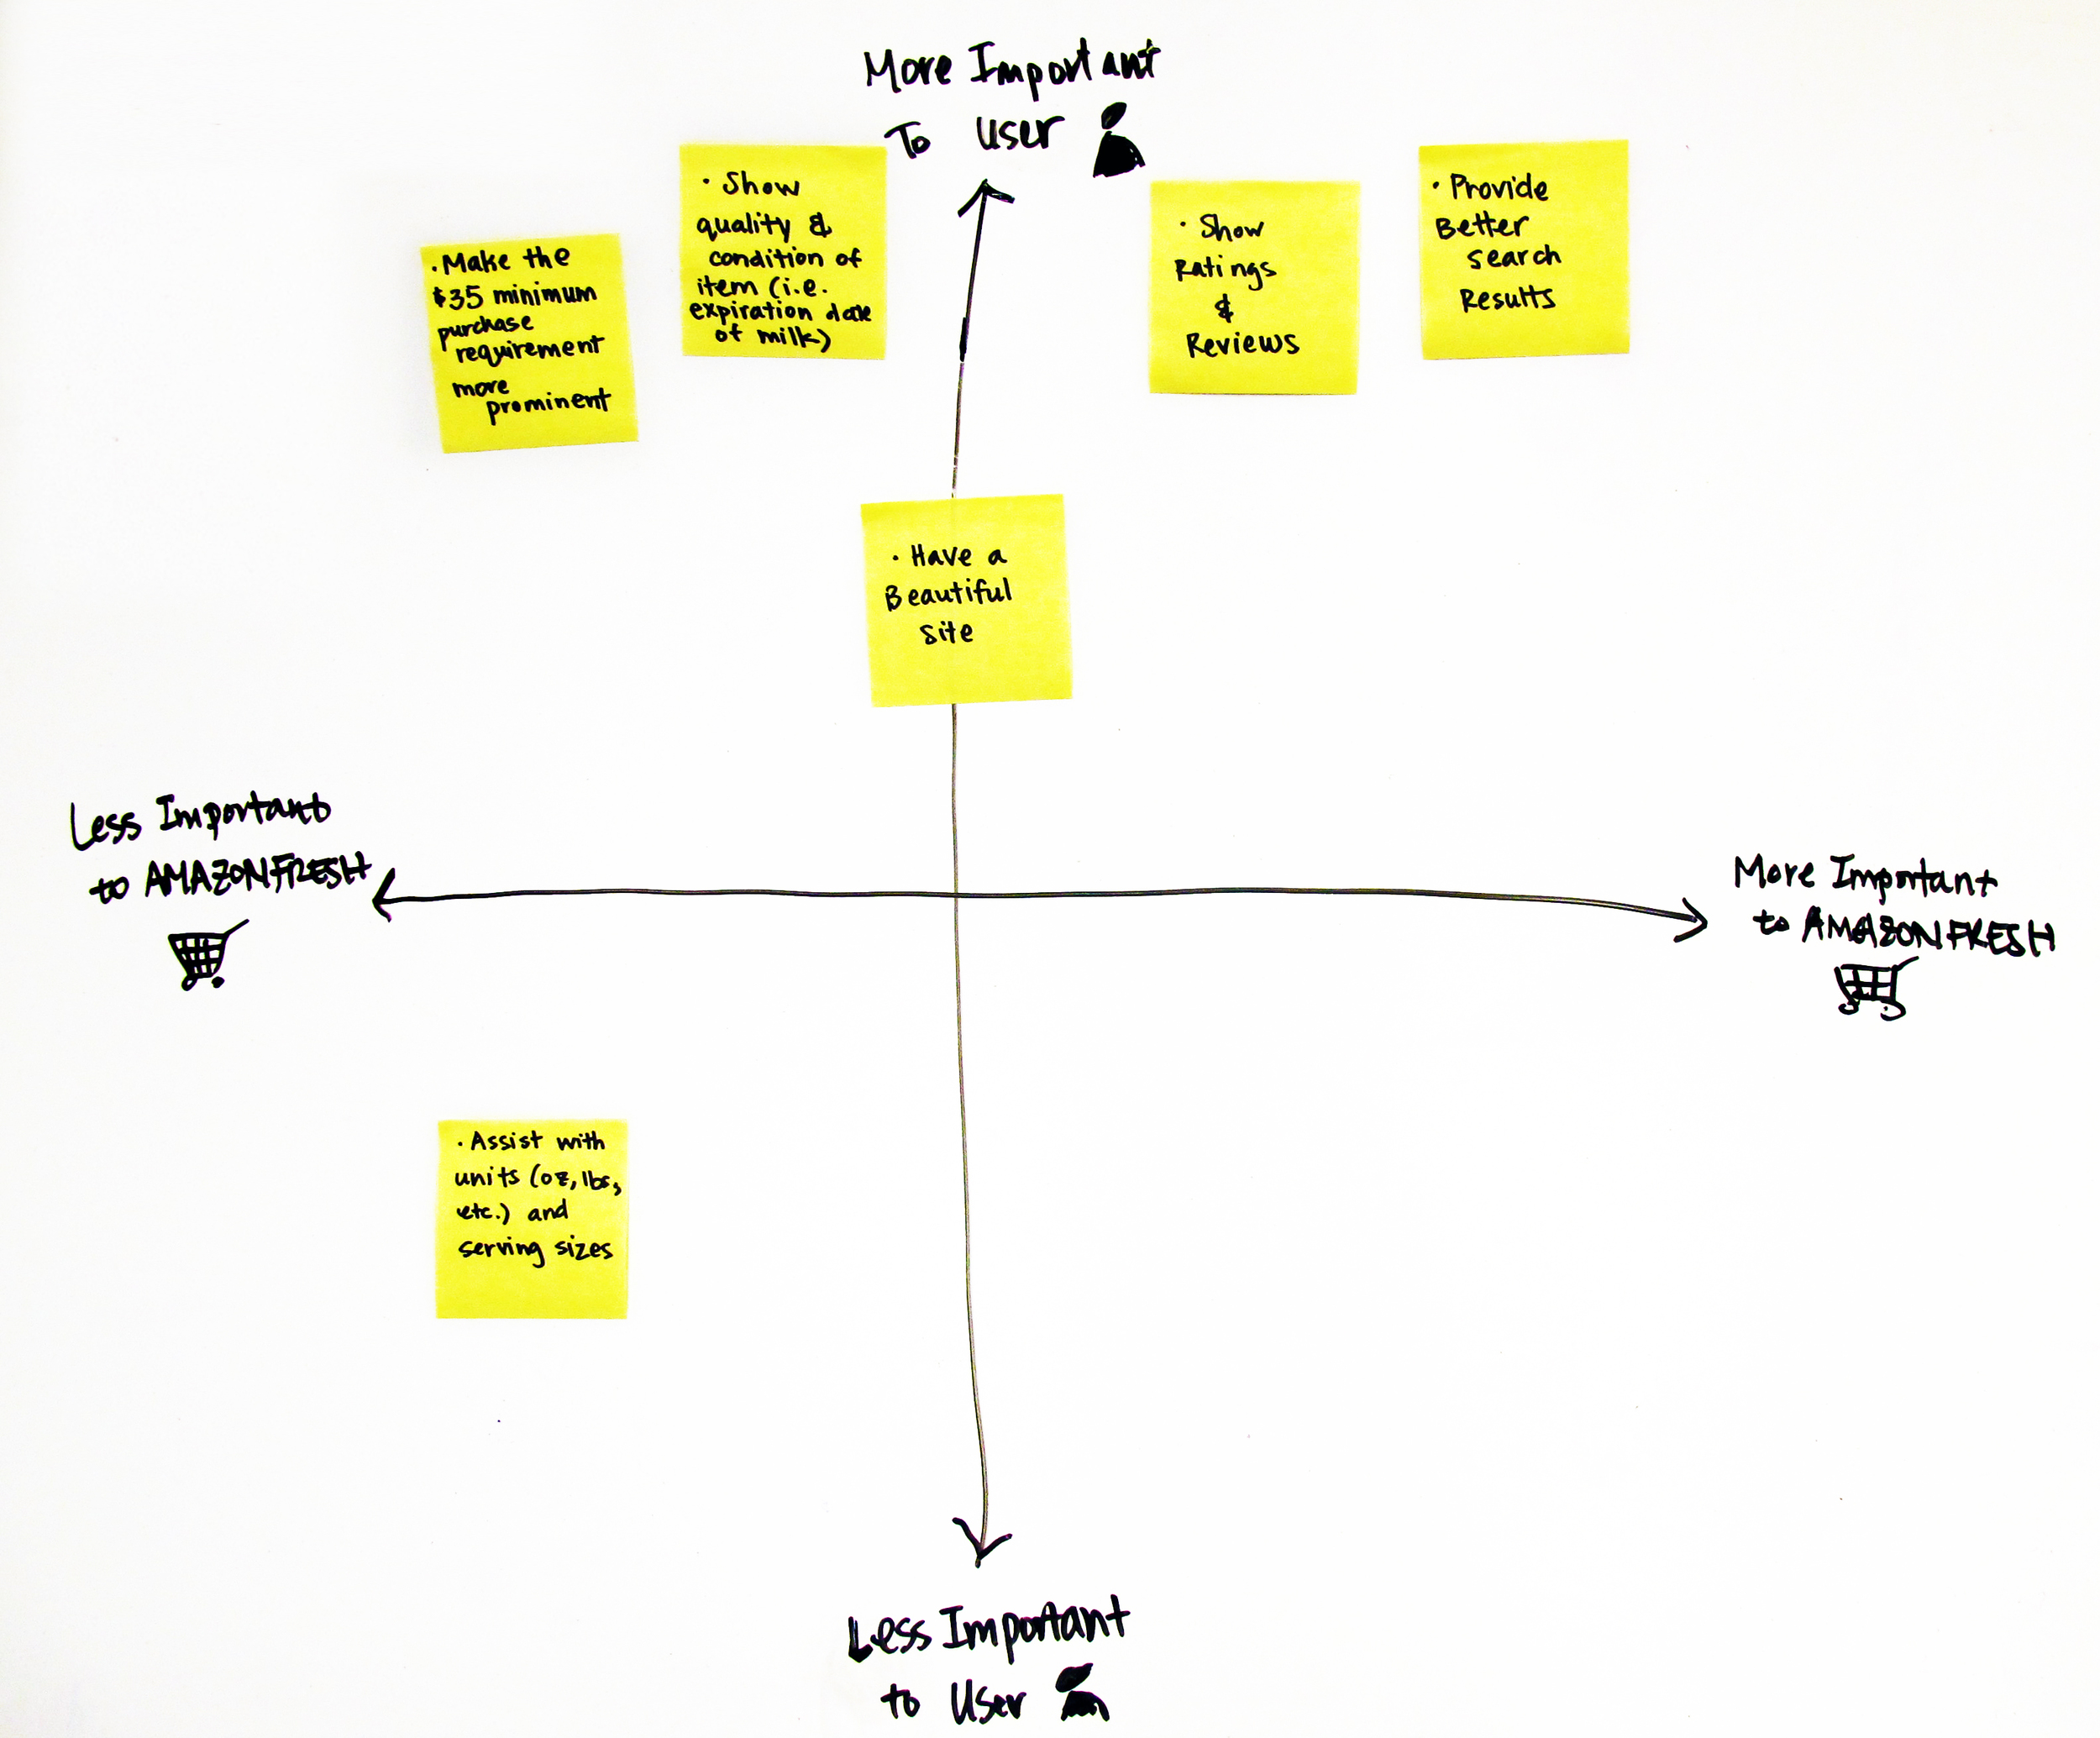 1. Placed high-level pain points onto yellow Post-Its 2. Prioritized pain points based on importance to (a) users and (b) AmazonFresh